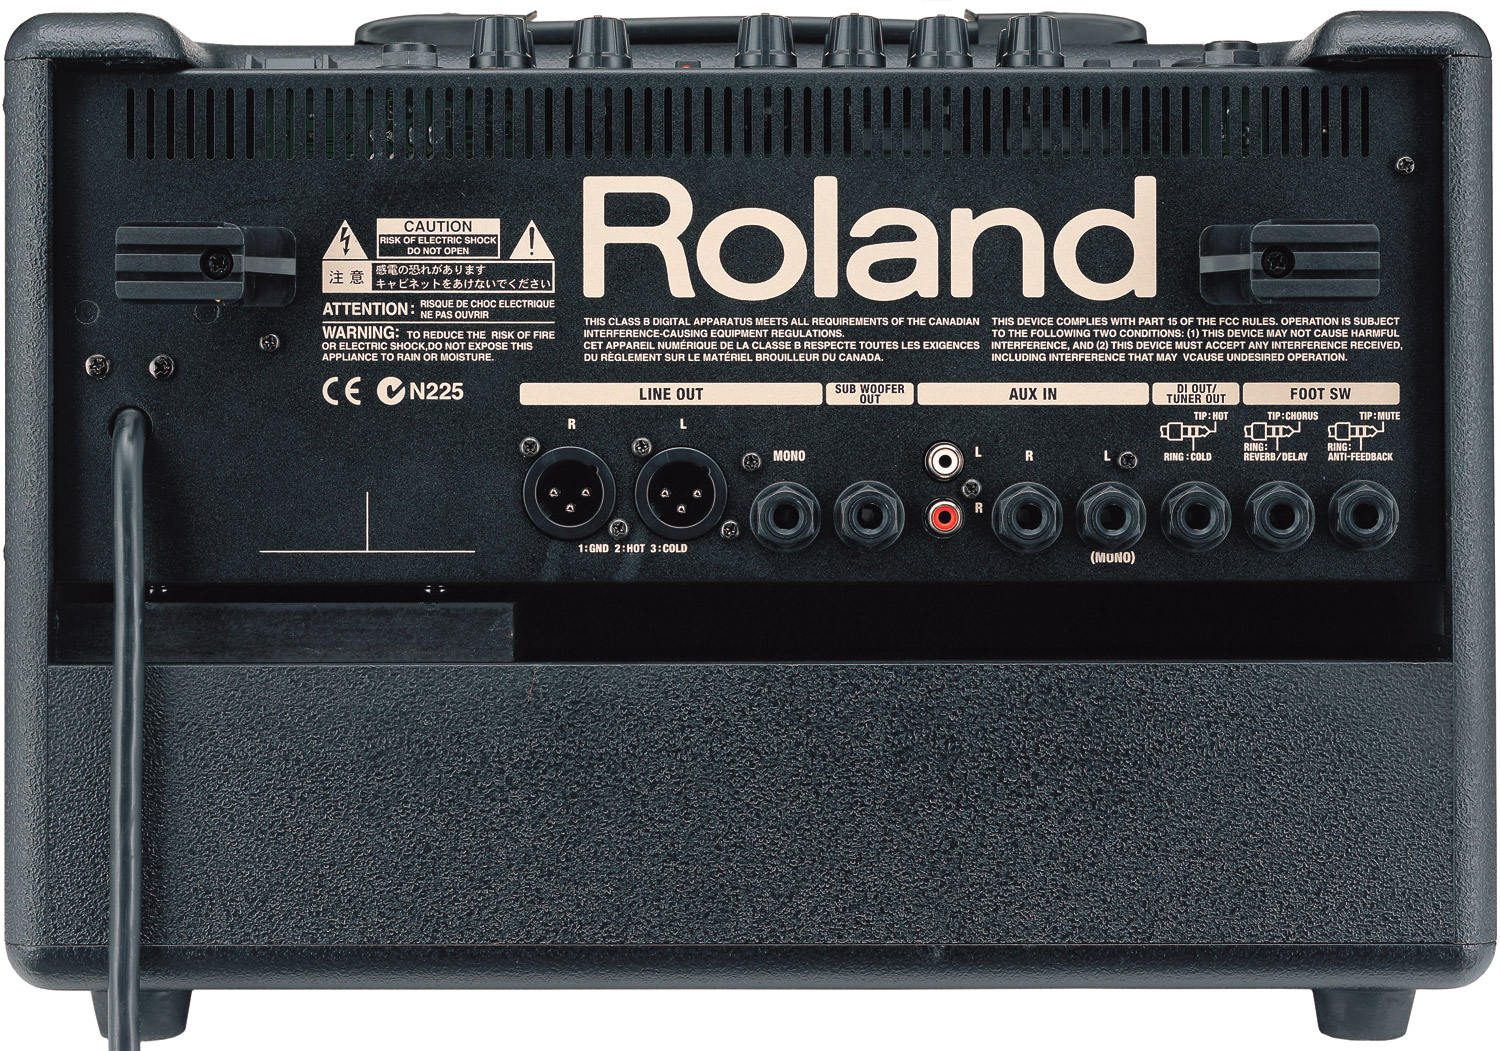 Roland AC-60 Rear View